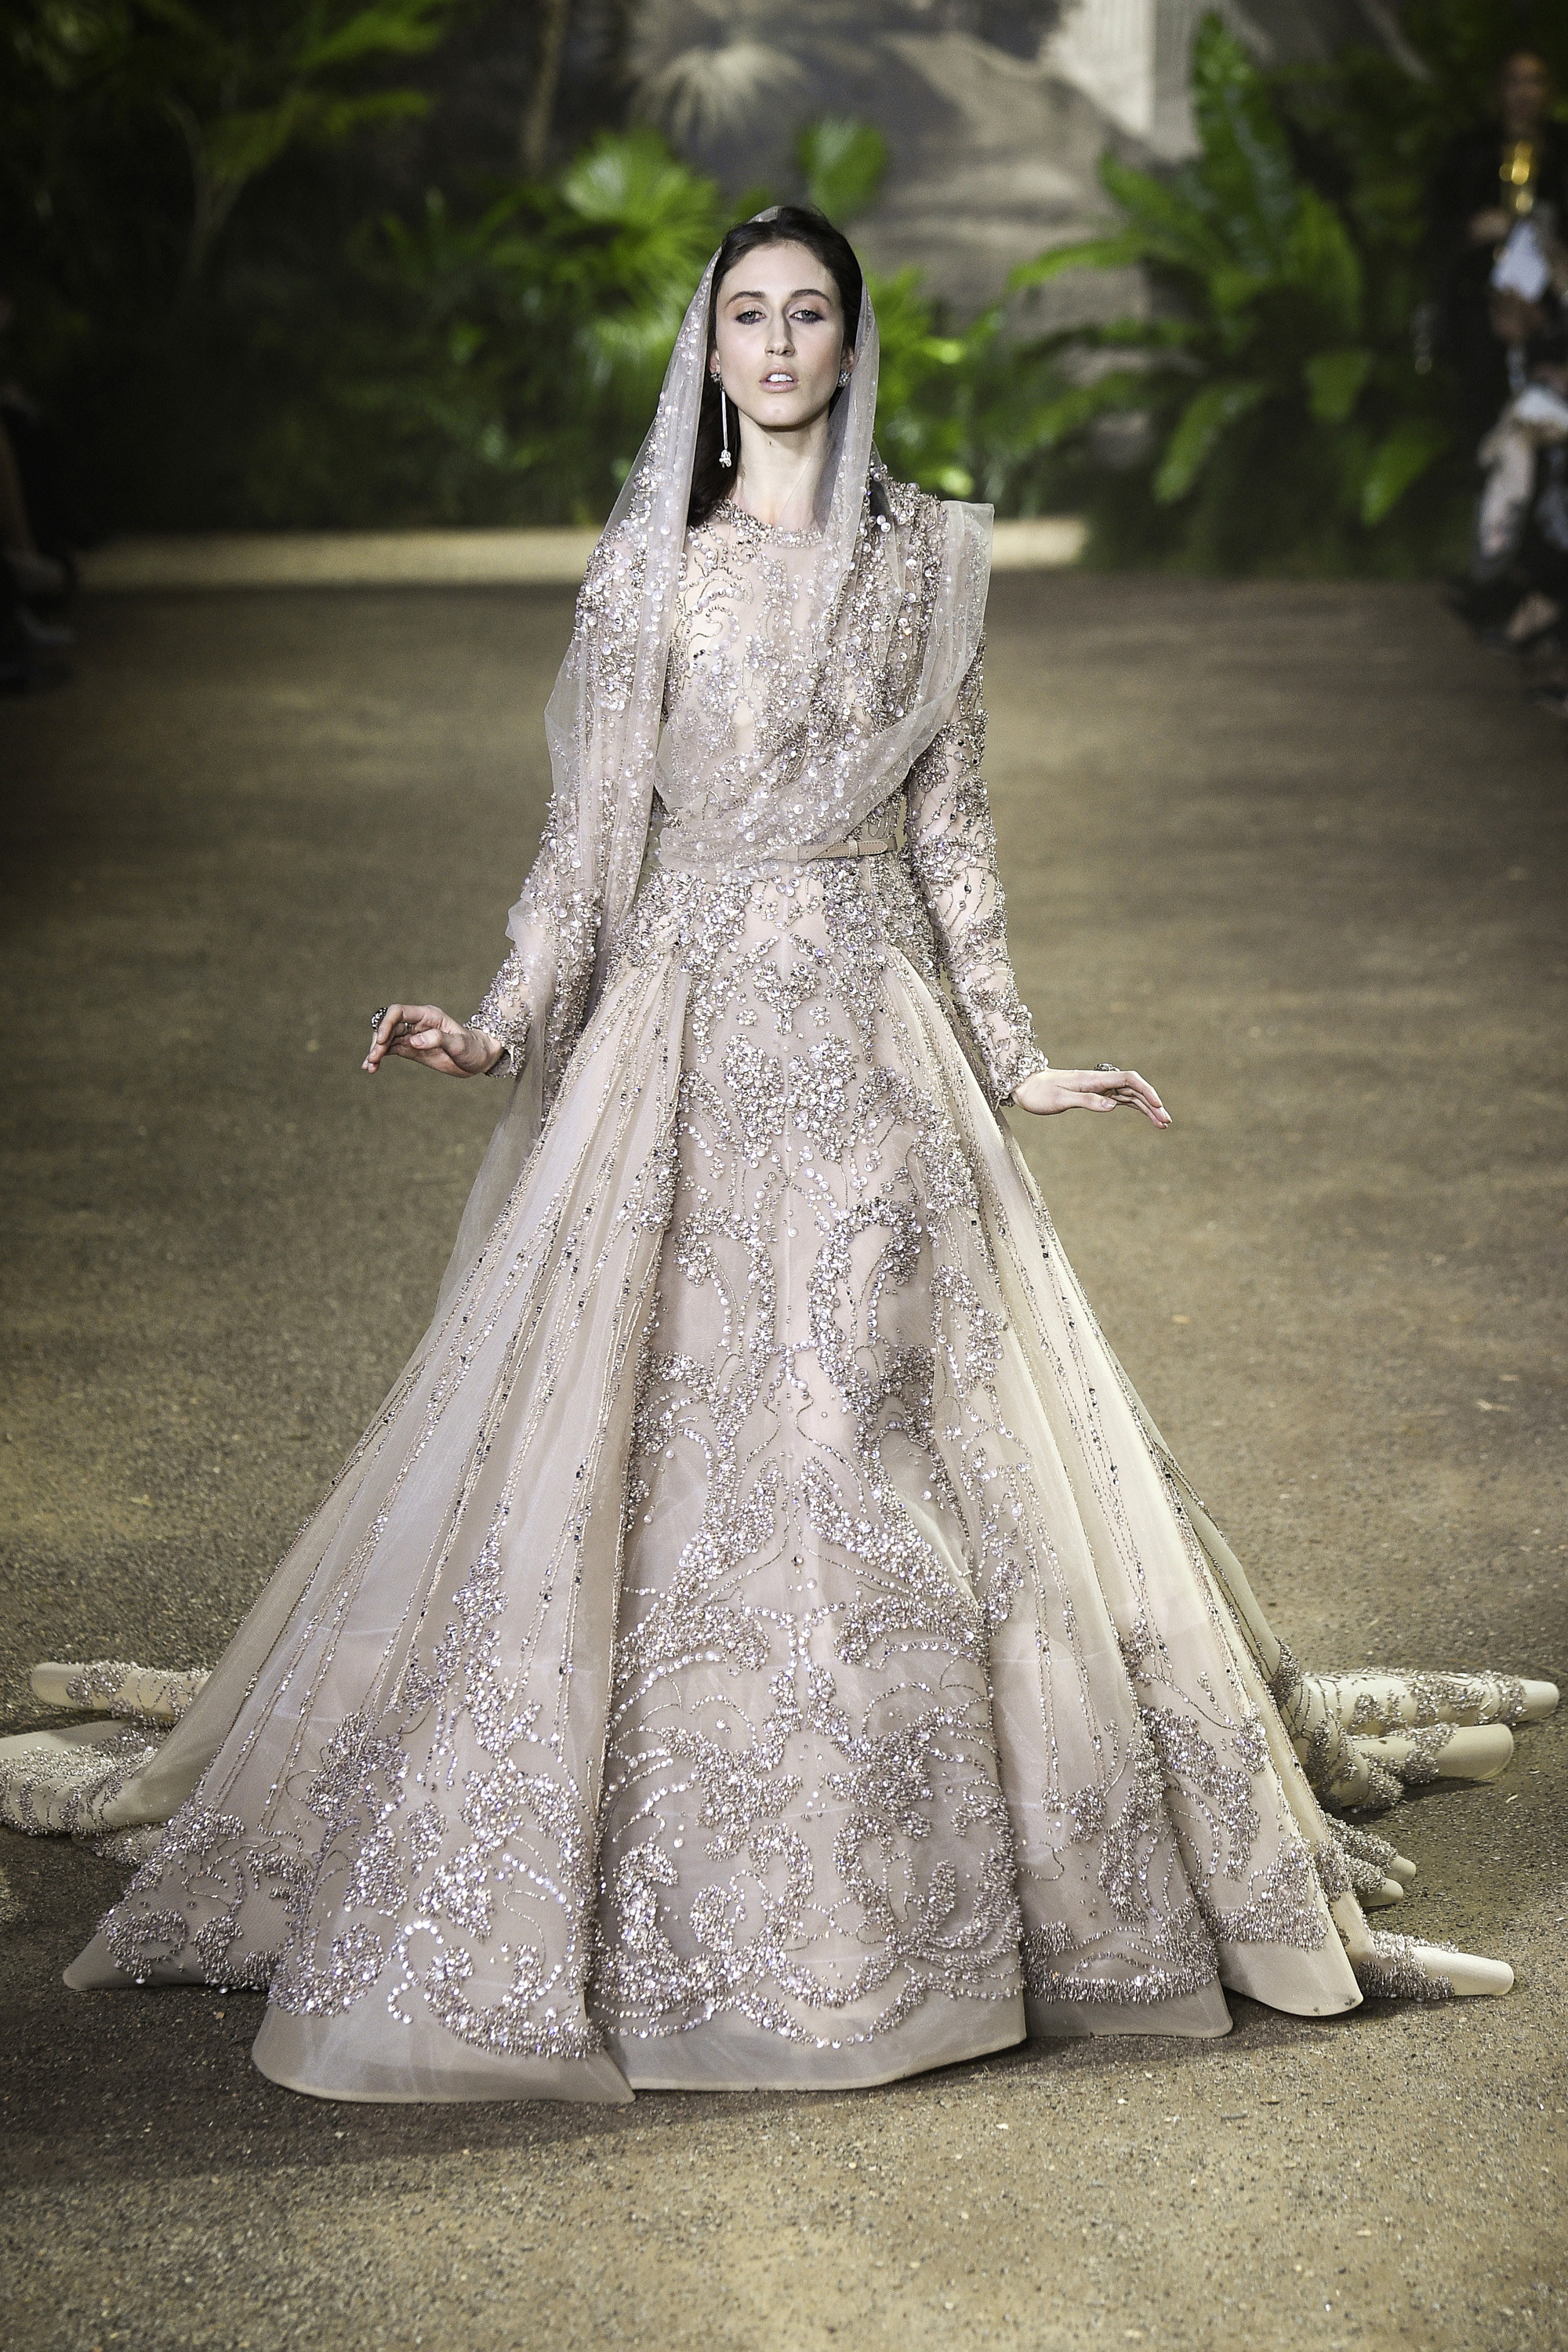 Elie Saabs Spring 2016 Haute Couture Collection at Paris Fashion Week